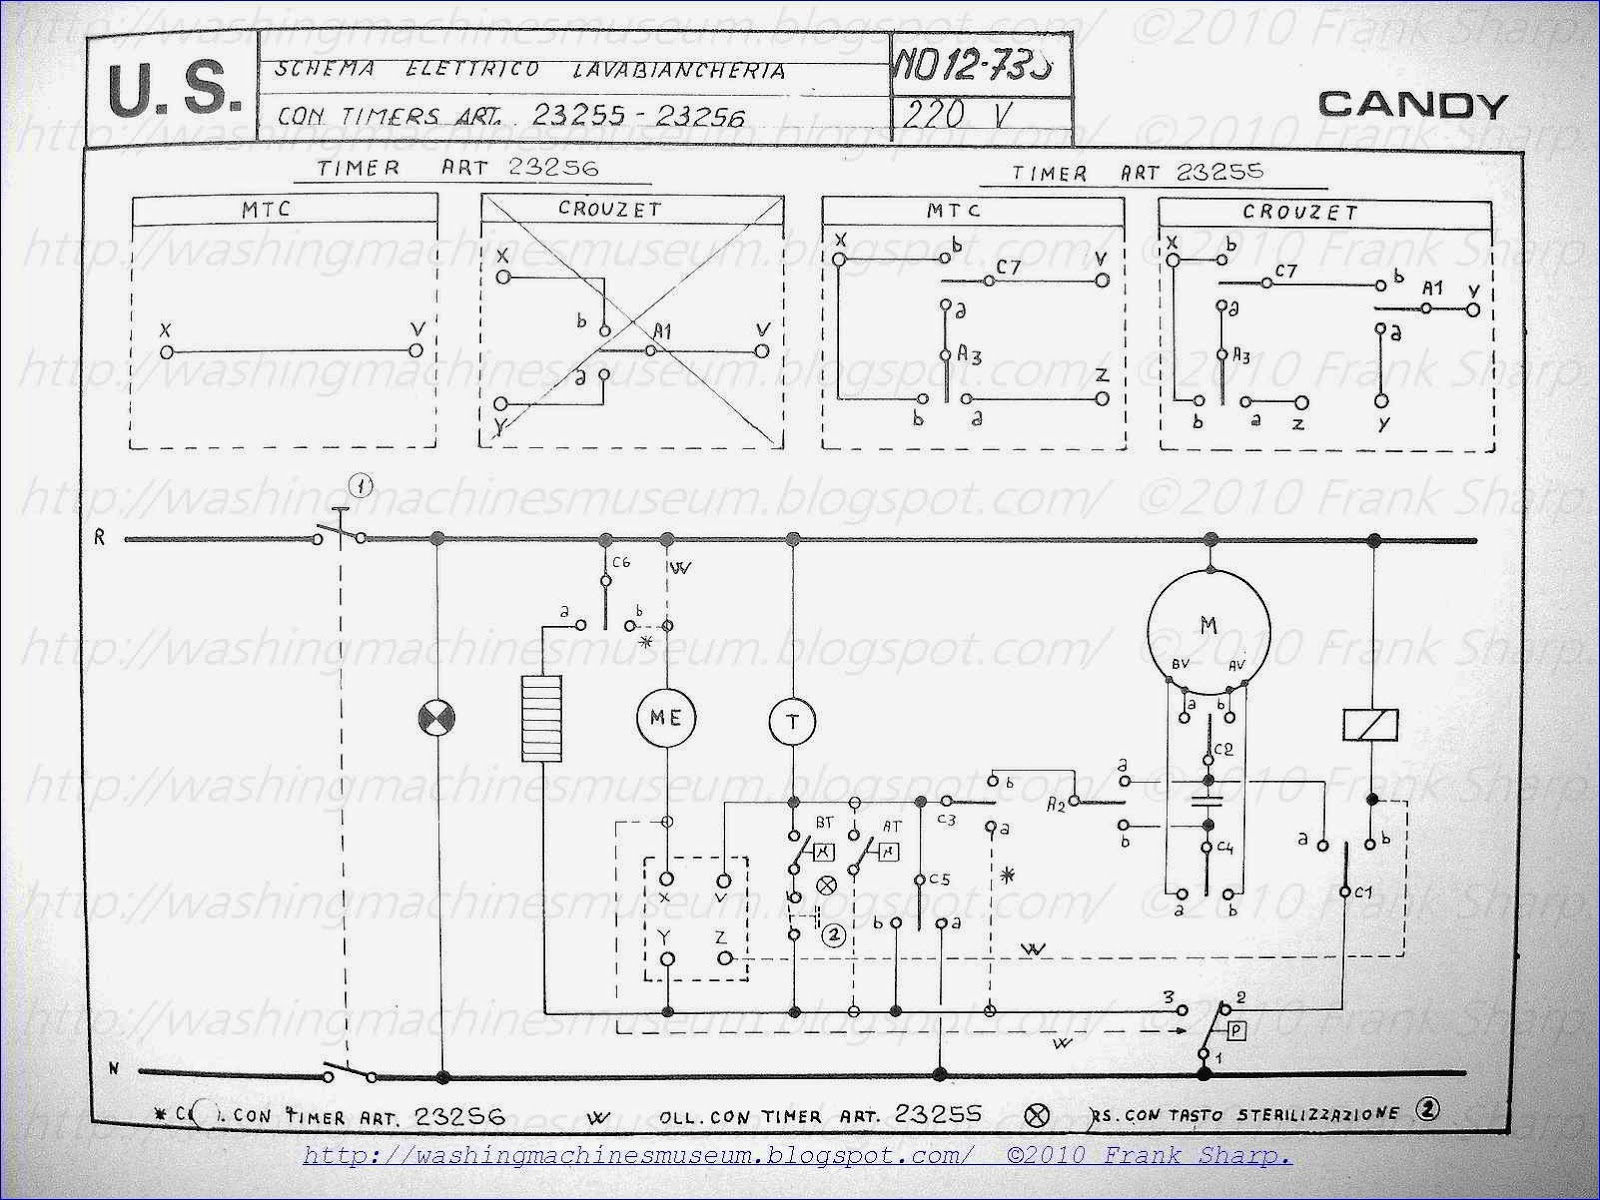 ge washer wiring diagram Collection-CANDY WASHING MACHINE WITH TIMER SCHEMATIC DIAGRAM 3-l